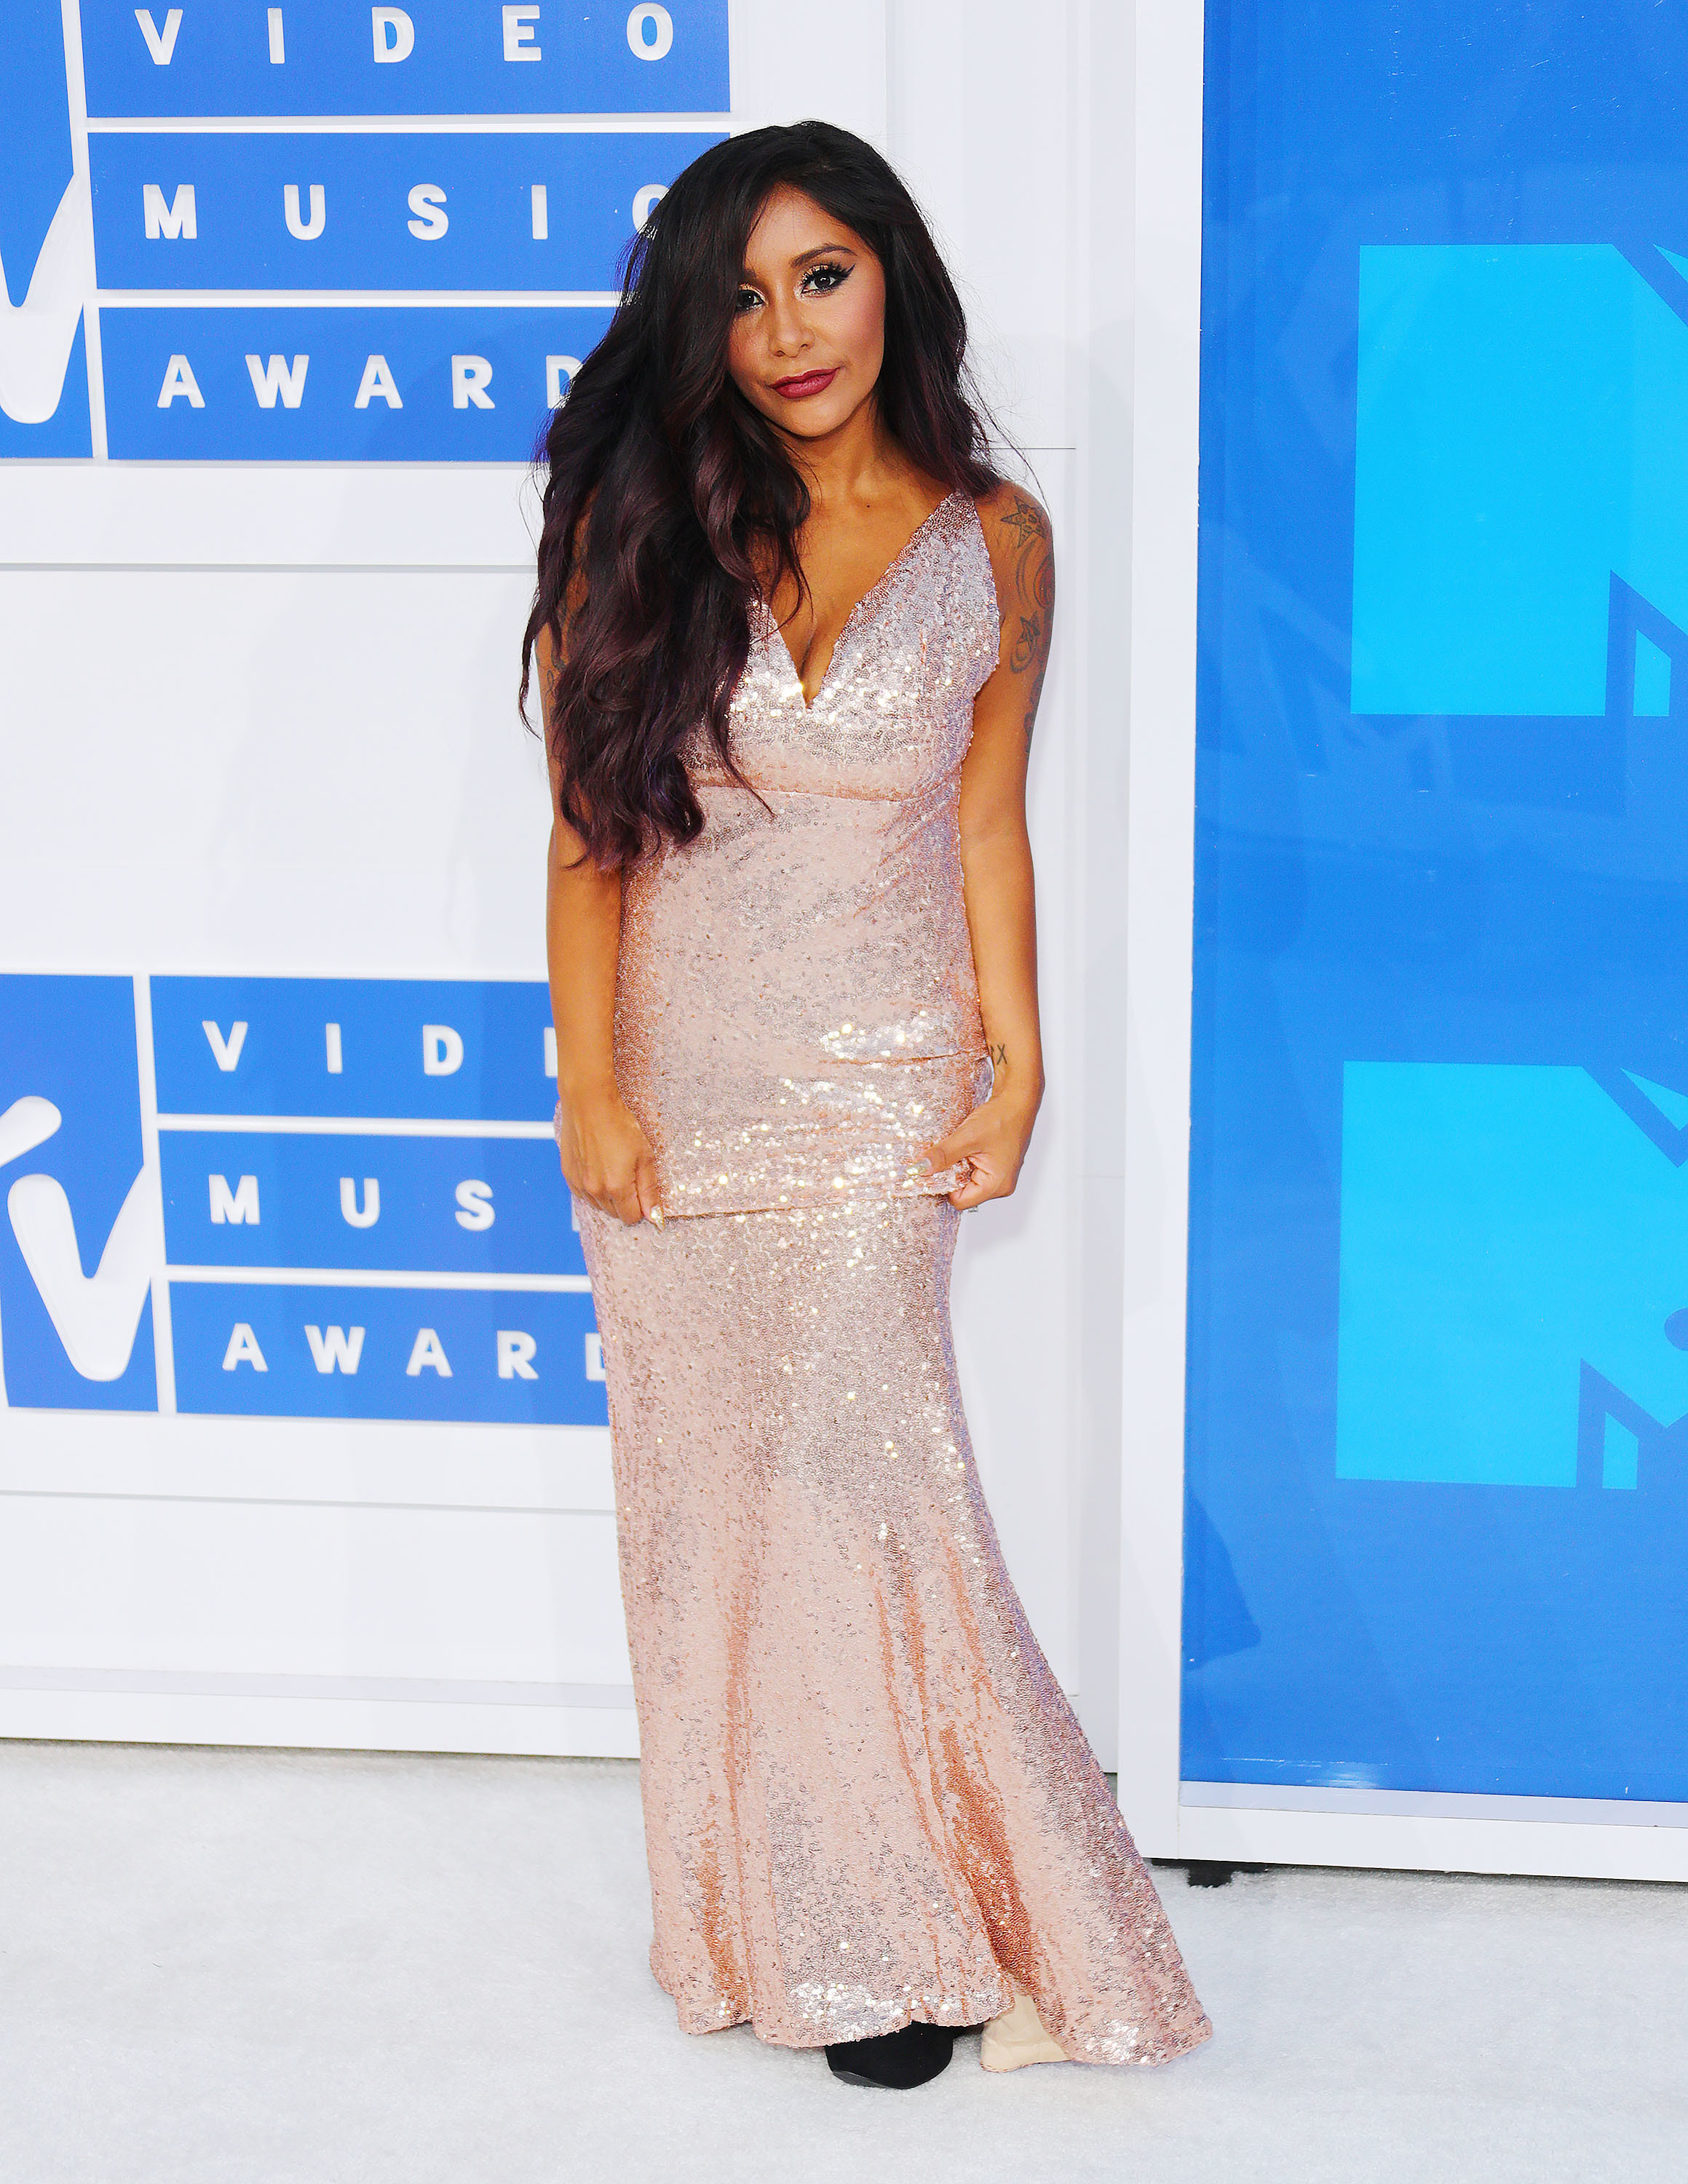 Nicole Polizzi aka Snooki attends the 2016 MTV VMA Awards at Madison Square Garden in New York City on Aug. 28, 2016.